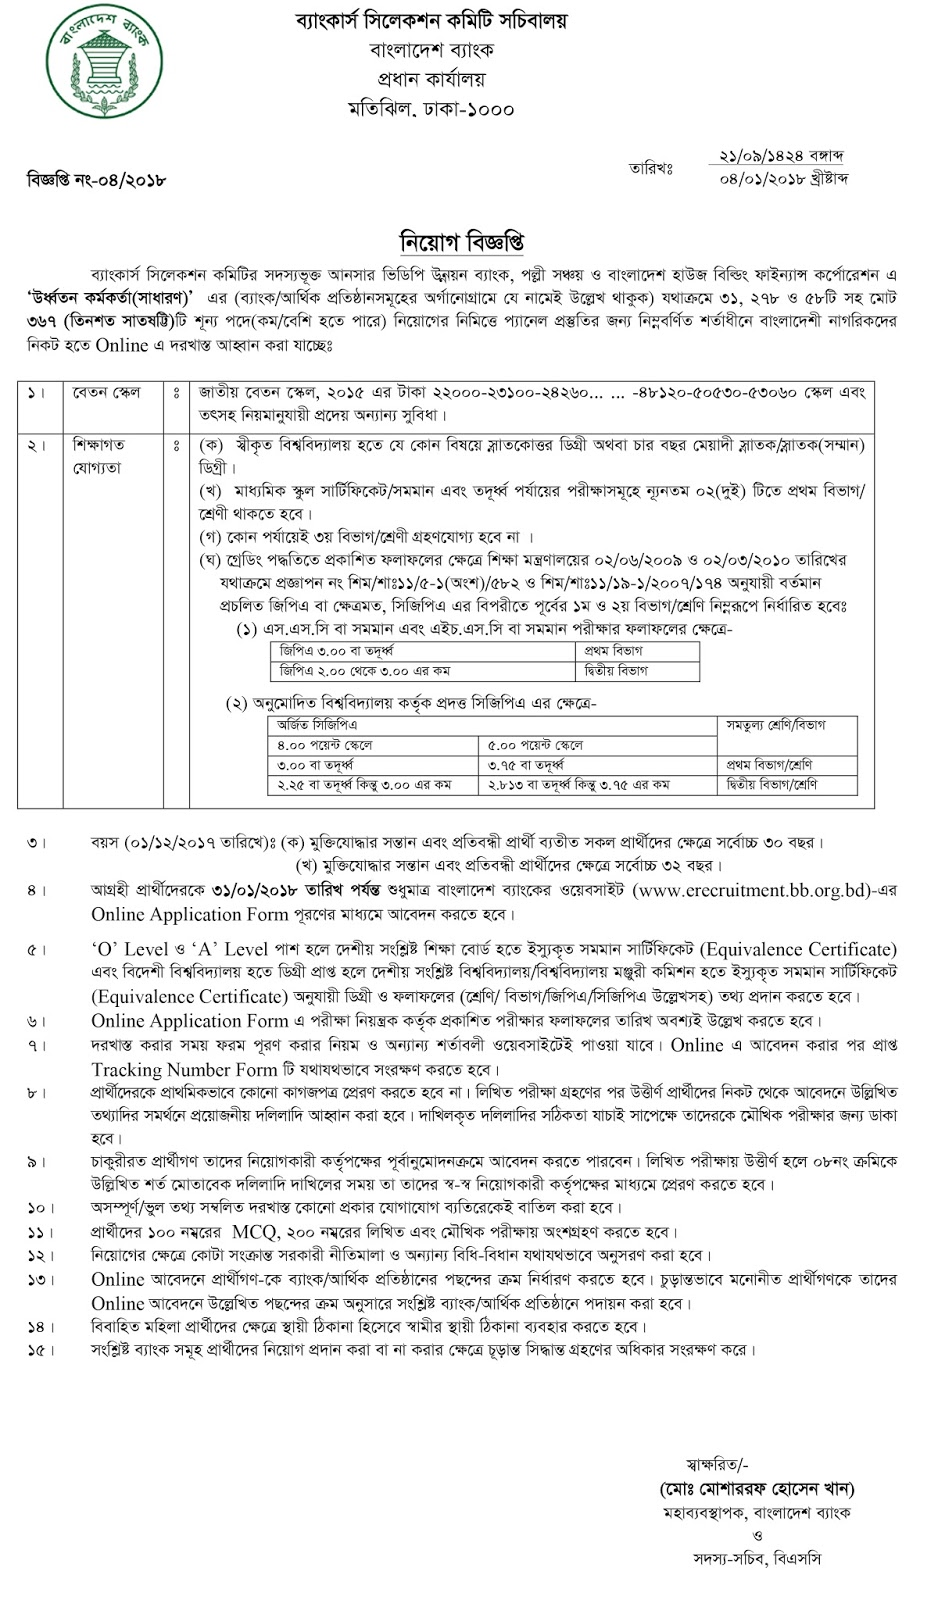 Polli Shanchoy Bank Senior Officer (General) Job Circular 2018